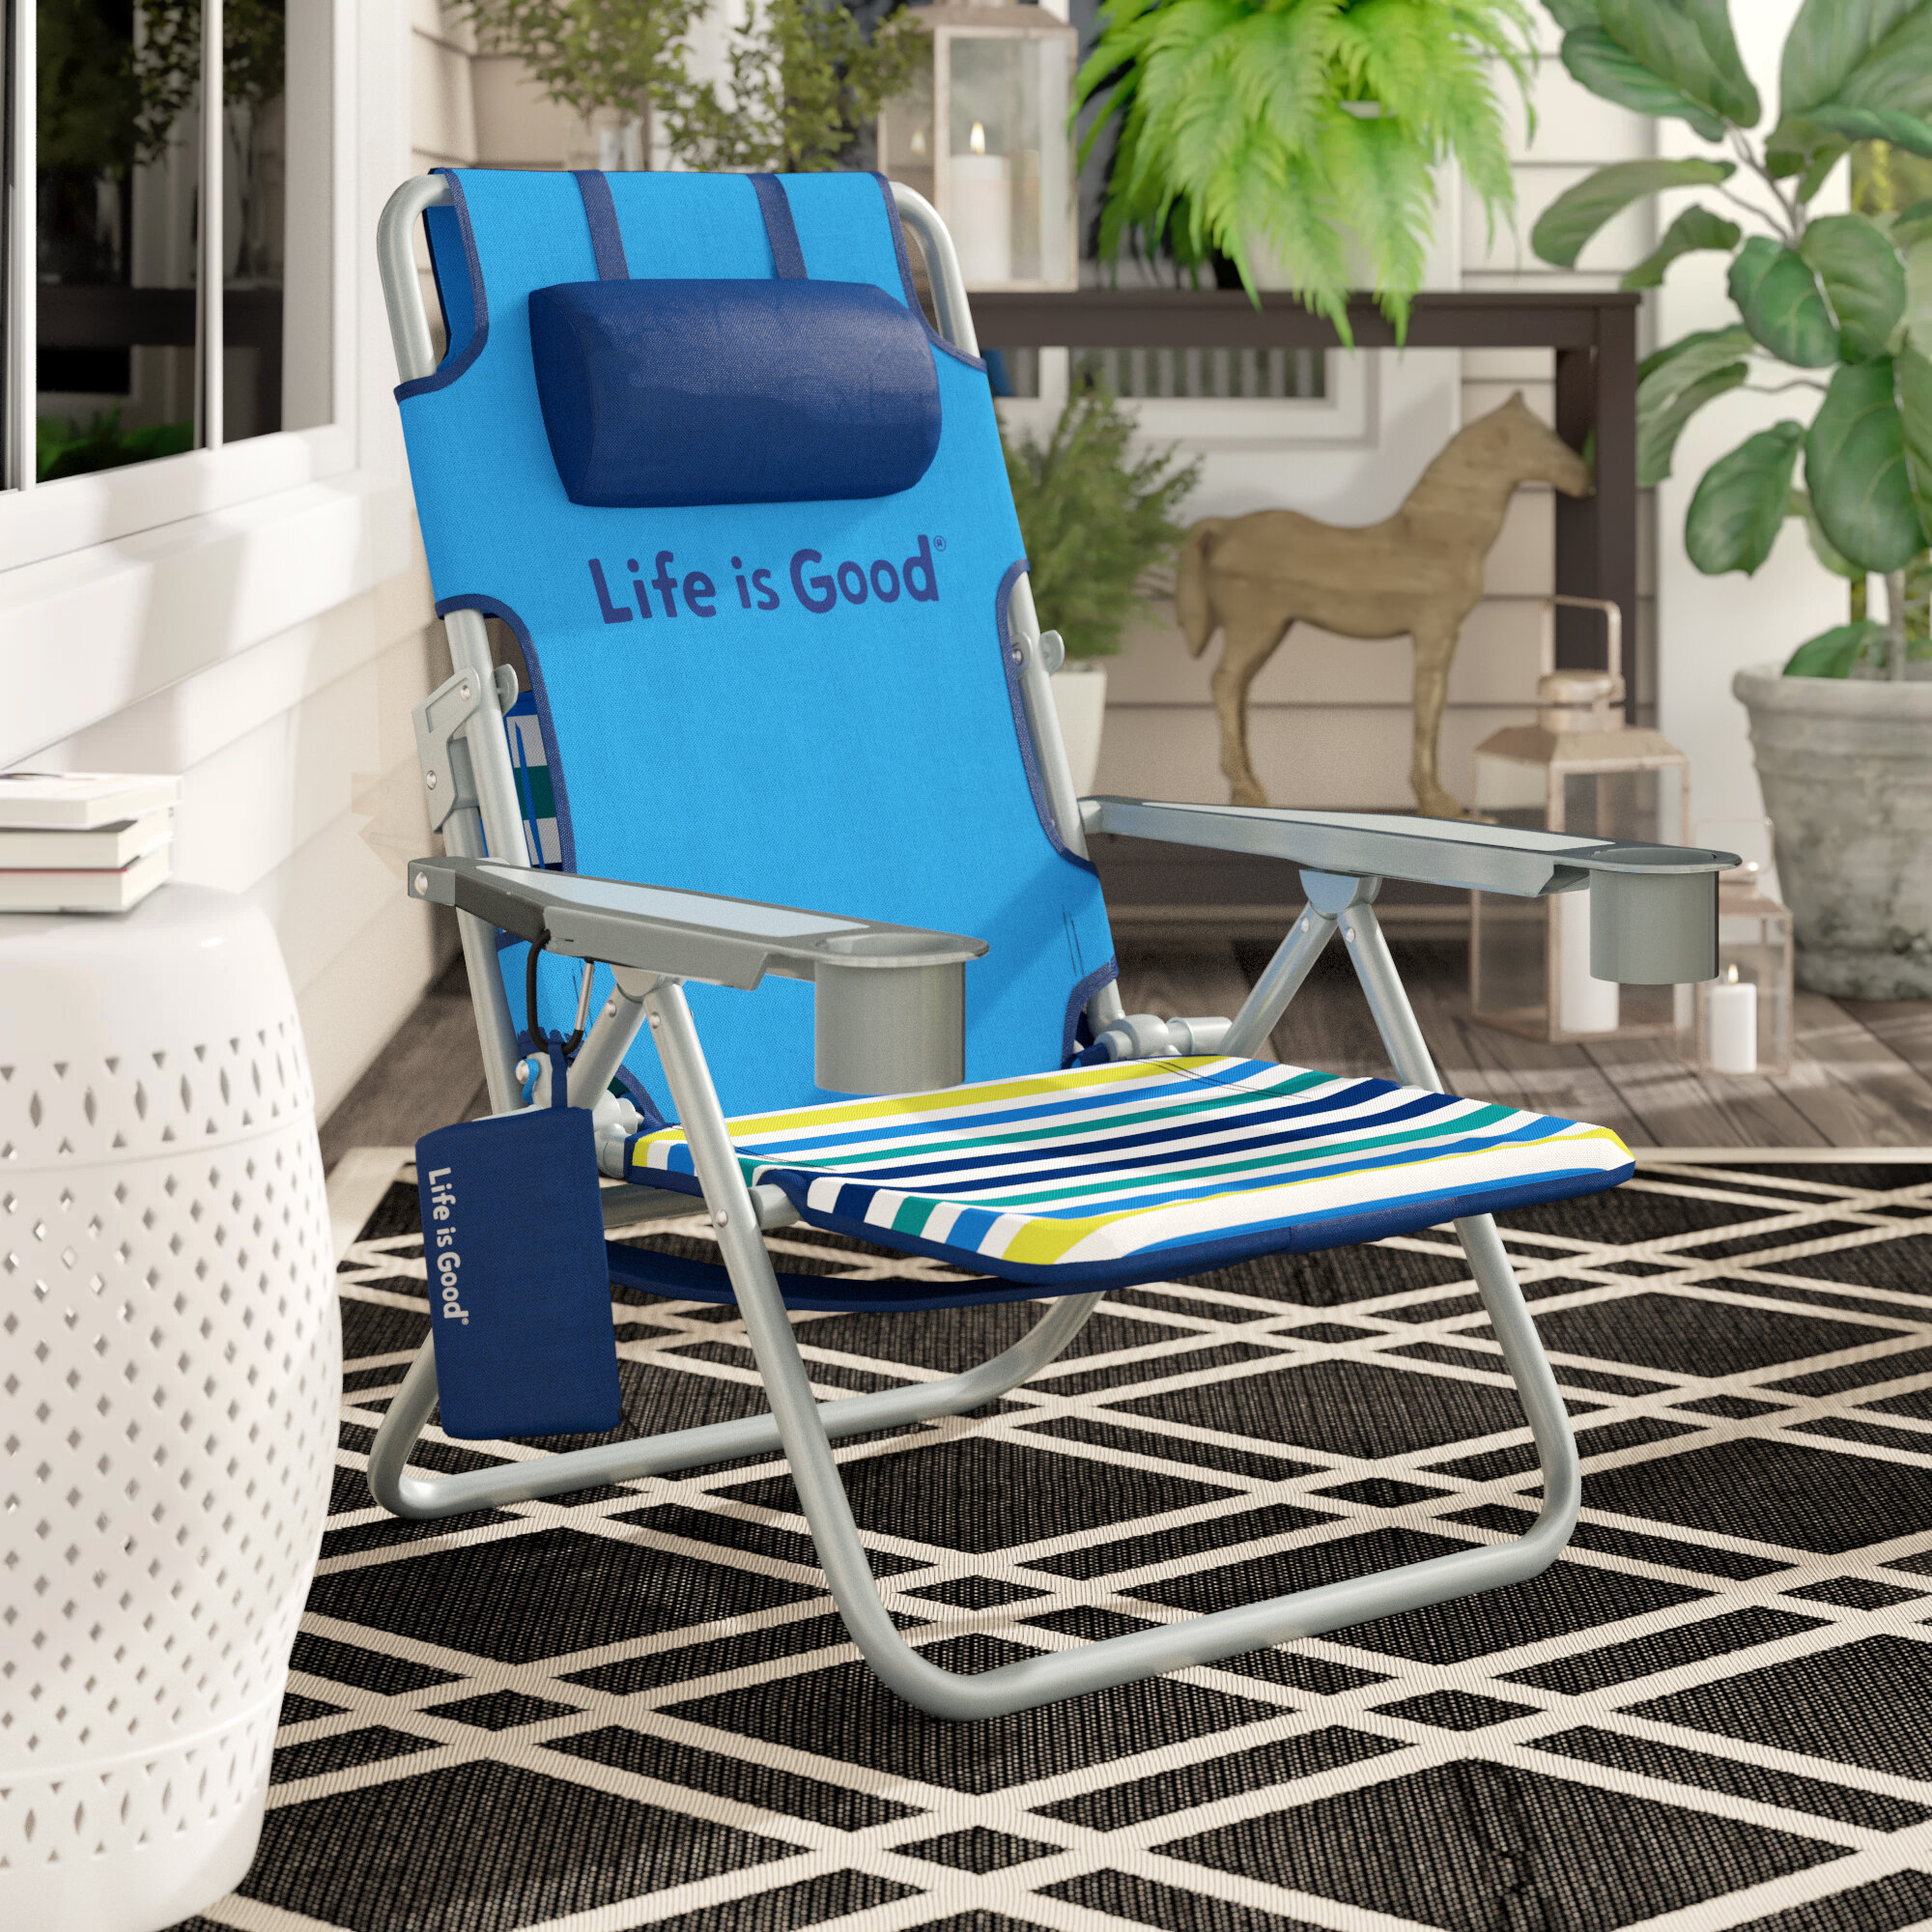 Wondrous Lifeisgood Life Is Good Reclining Beach Chair Reviews Pabps2019 Chair Design Images Pabps2019Com